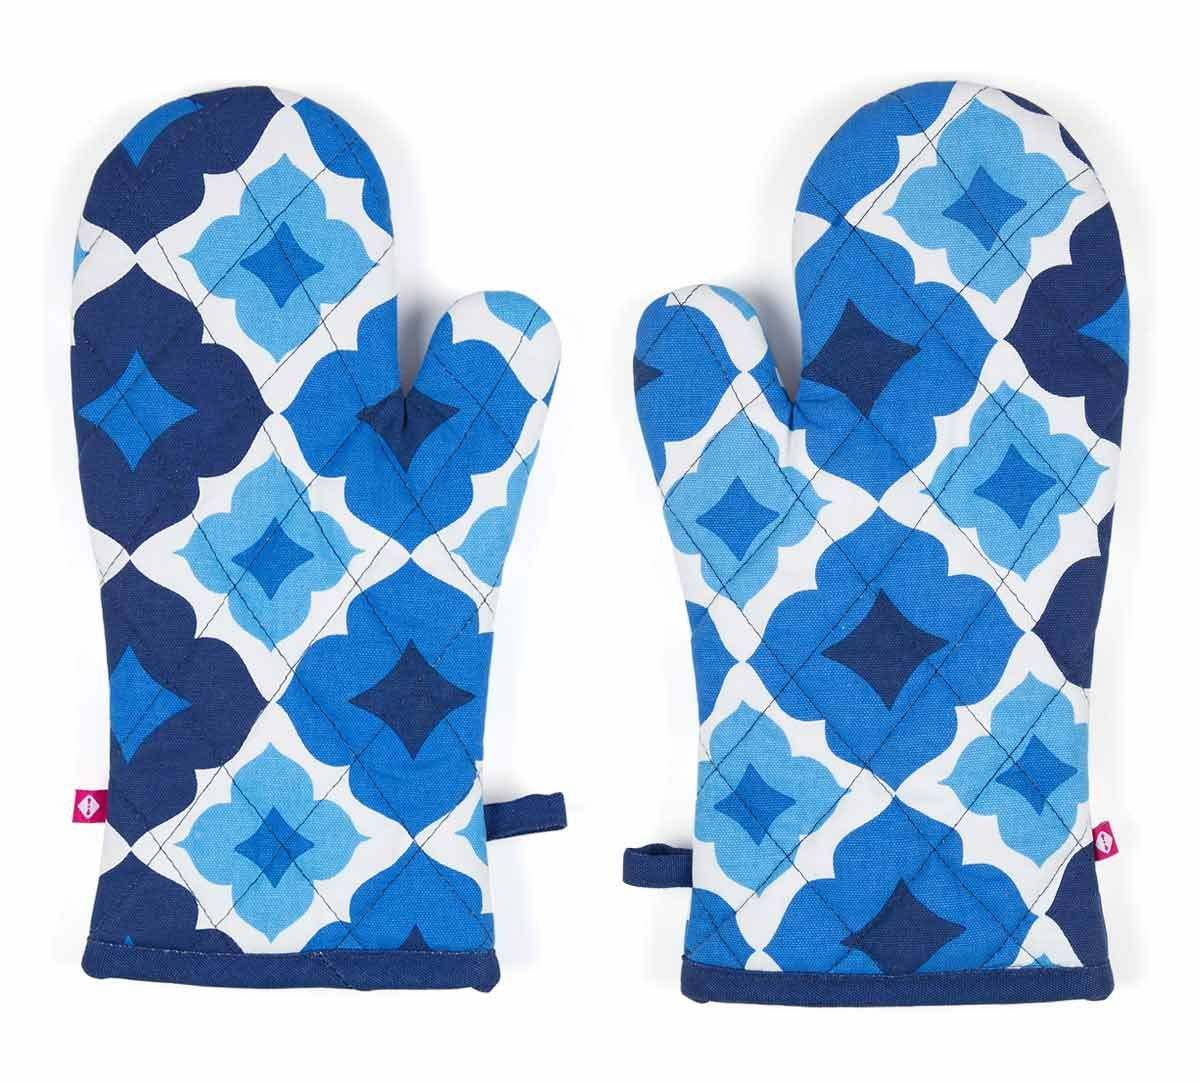 India Circus Ultramarine Tracery Oven Mitts